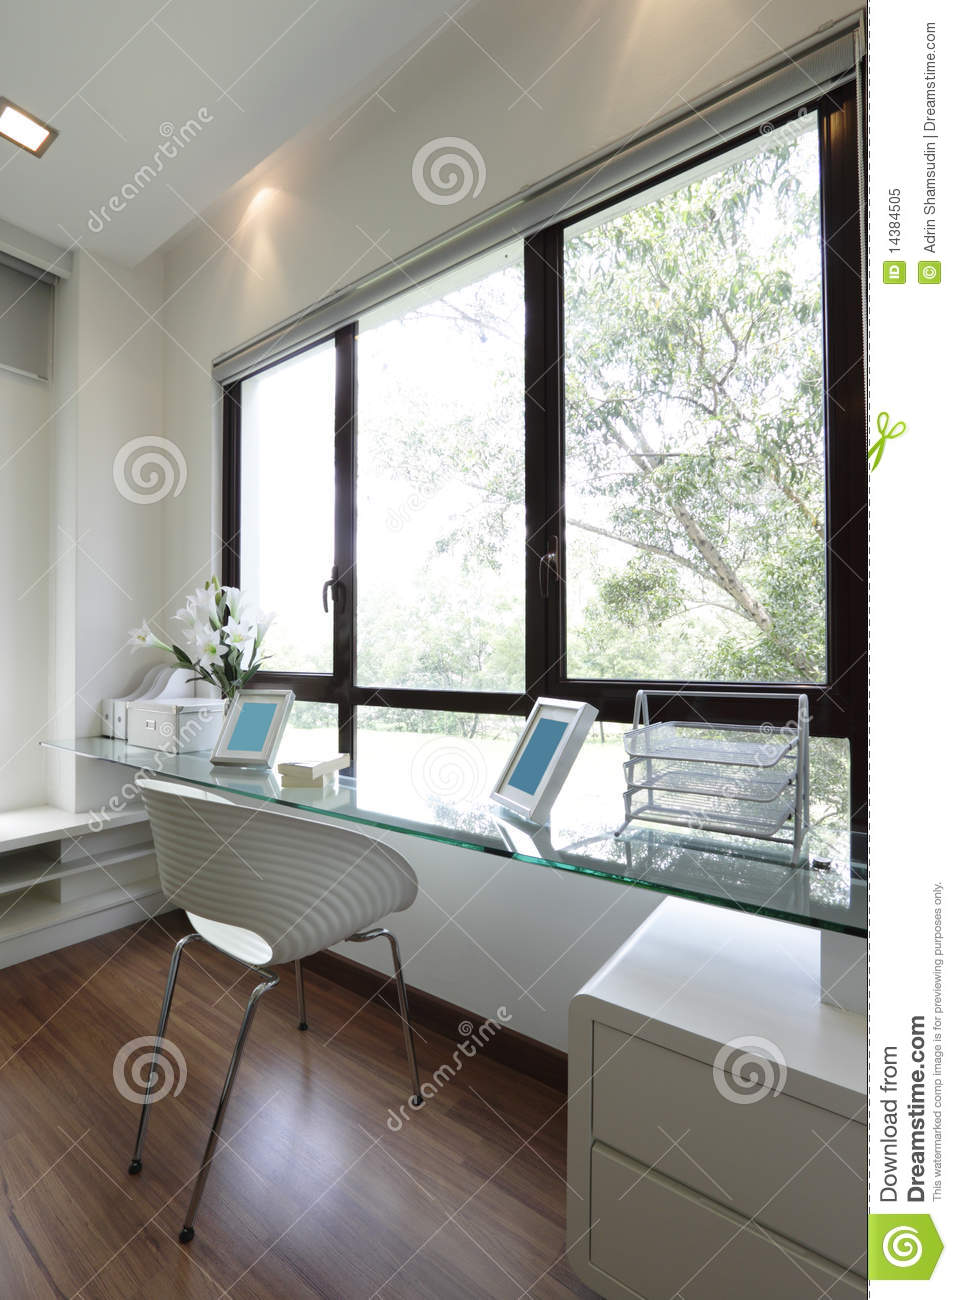 Study Table Royalty Free Stock Photo Image 14384505: study table facing window